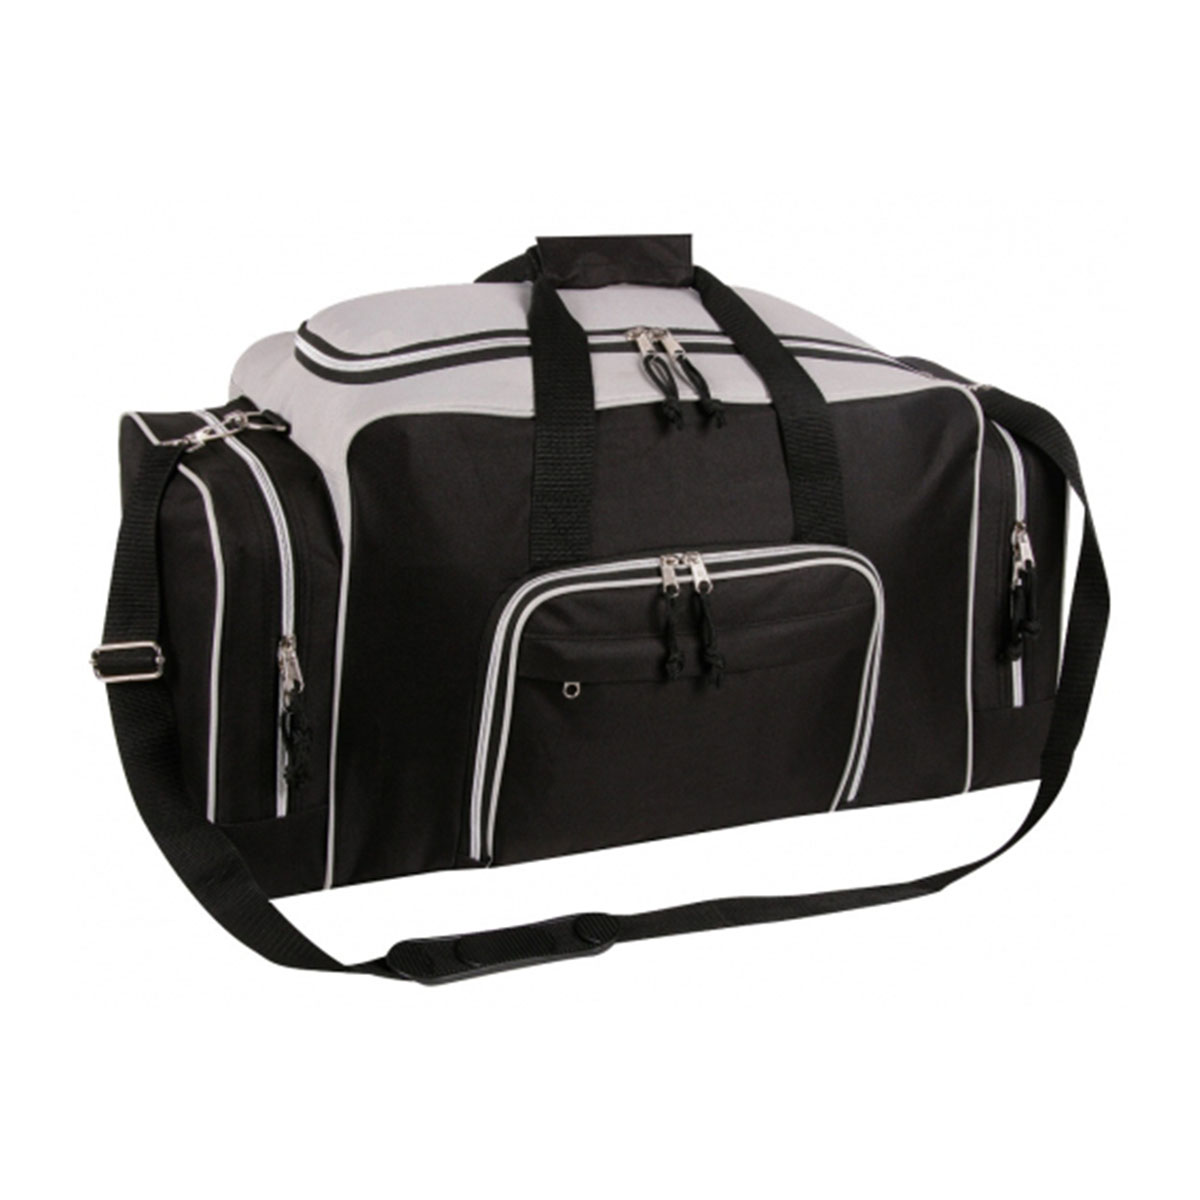 Deluxe Sports Bag-Black / Grey